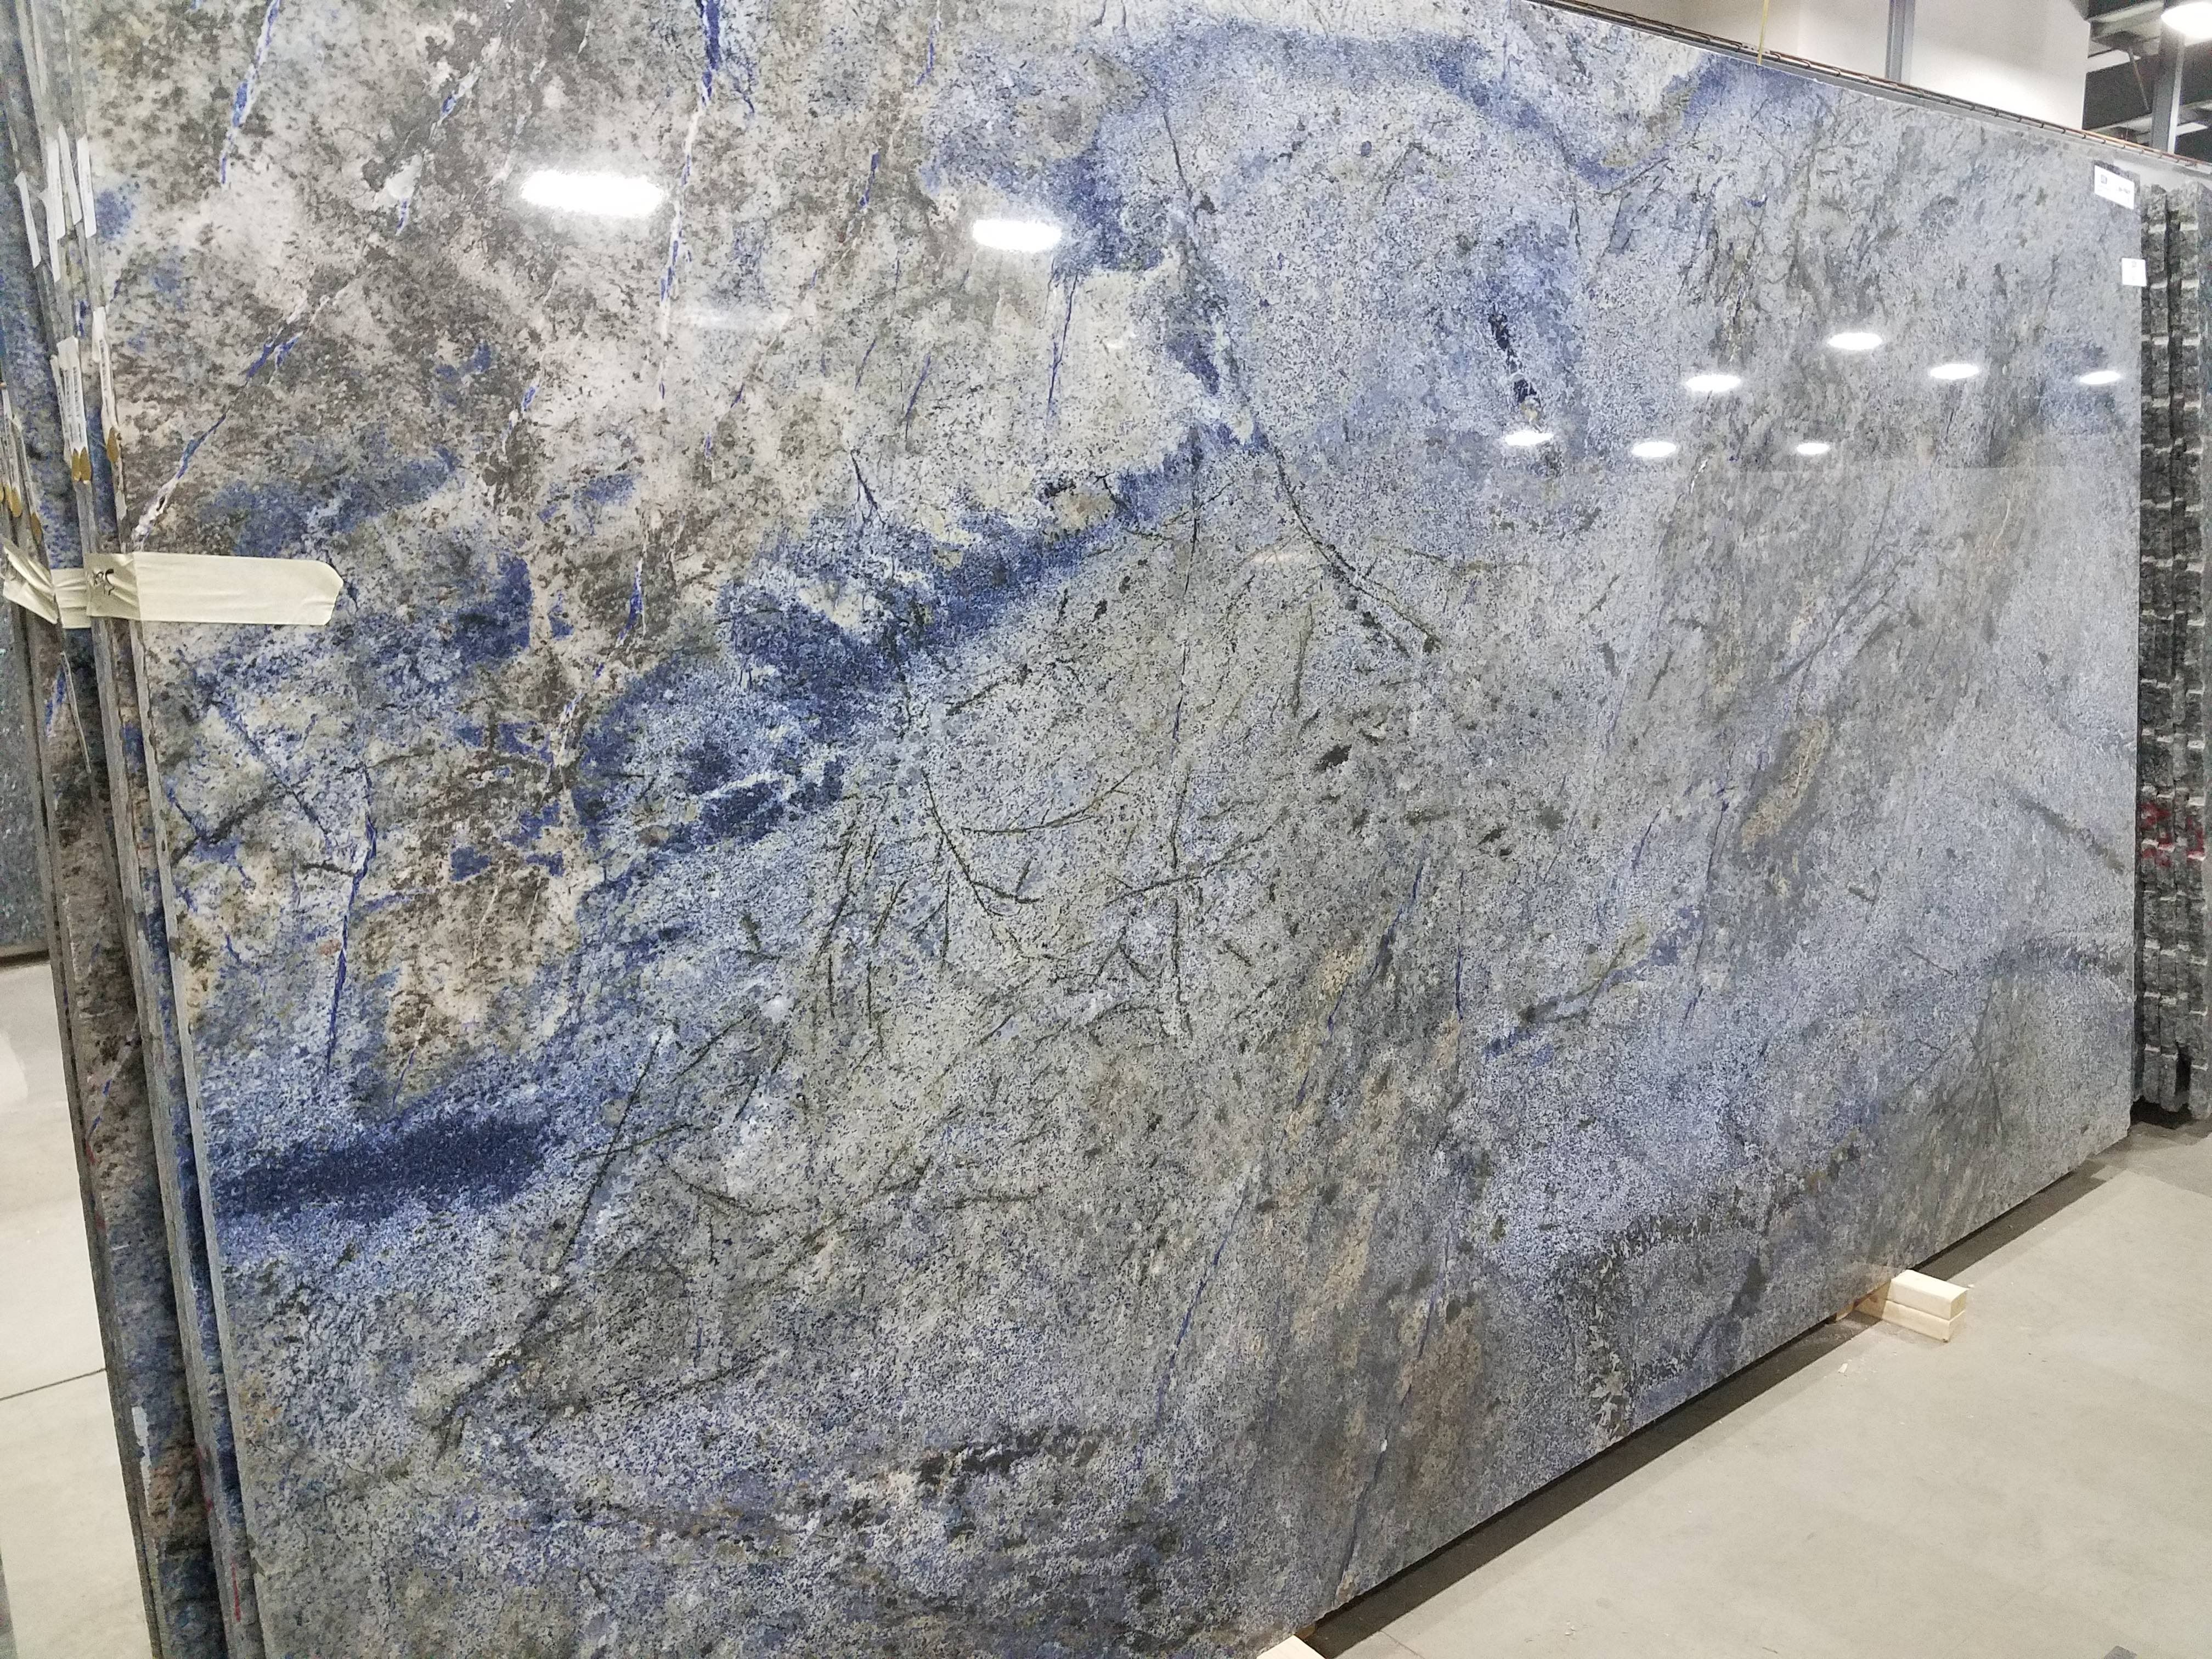 Natural Stone Granite Slabs Boston Granite Exchange Ma Stone Wholesaler Fireplace Remodel Granite Fireplace Granite Slab